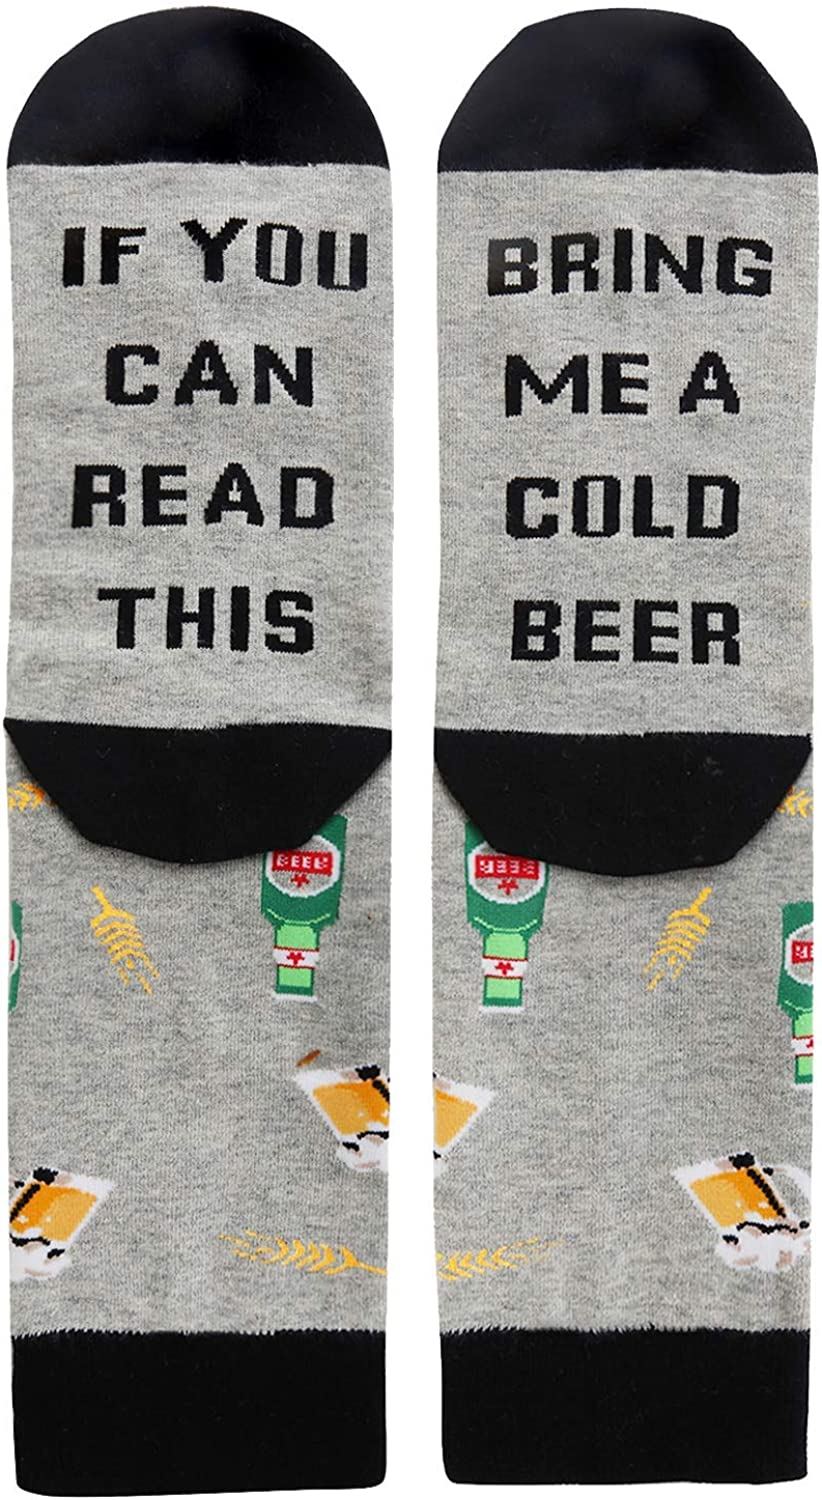 IF YOU CAN READ THIS Funny Saying Knitting Word Combed Cotton Crew Wine Coffee Beer Socks for Men Women UZO-B076P9DZYM